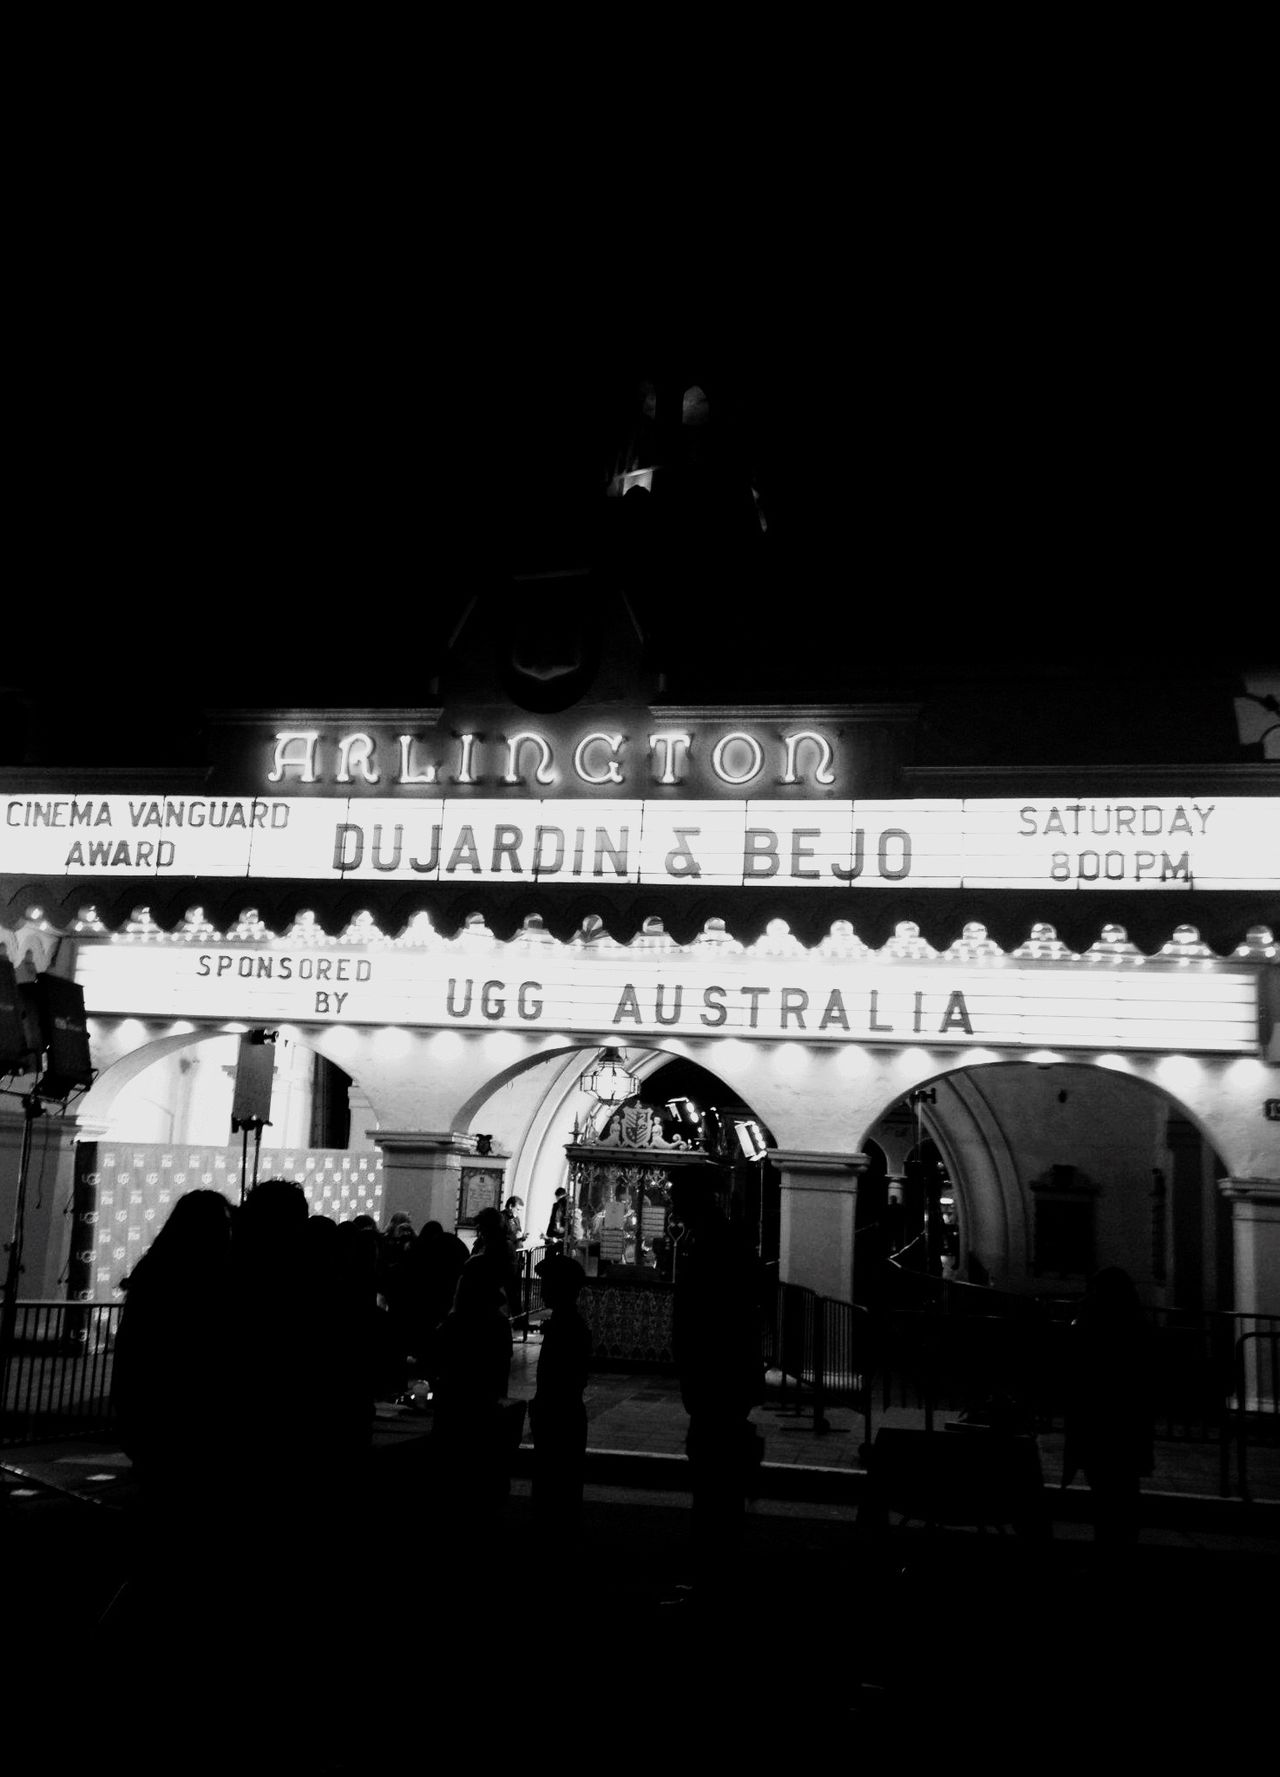 QVHoughPhoto Santabarbara California Filmfestival Arlingtontheatre Jeandujardin Berenicebejo Theartist Marquee Blackandwhite IPhoneography IPhone4s